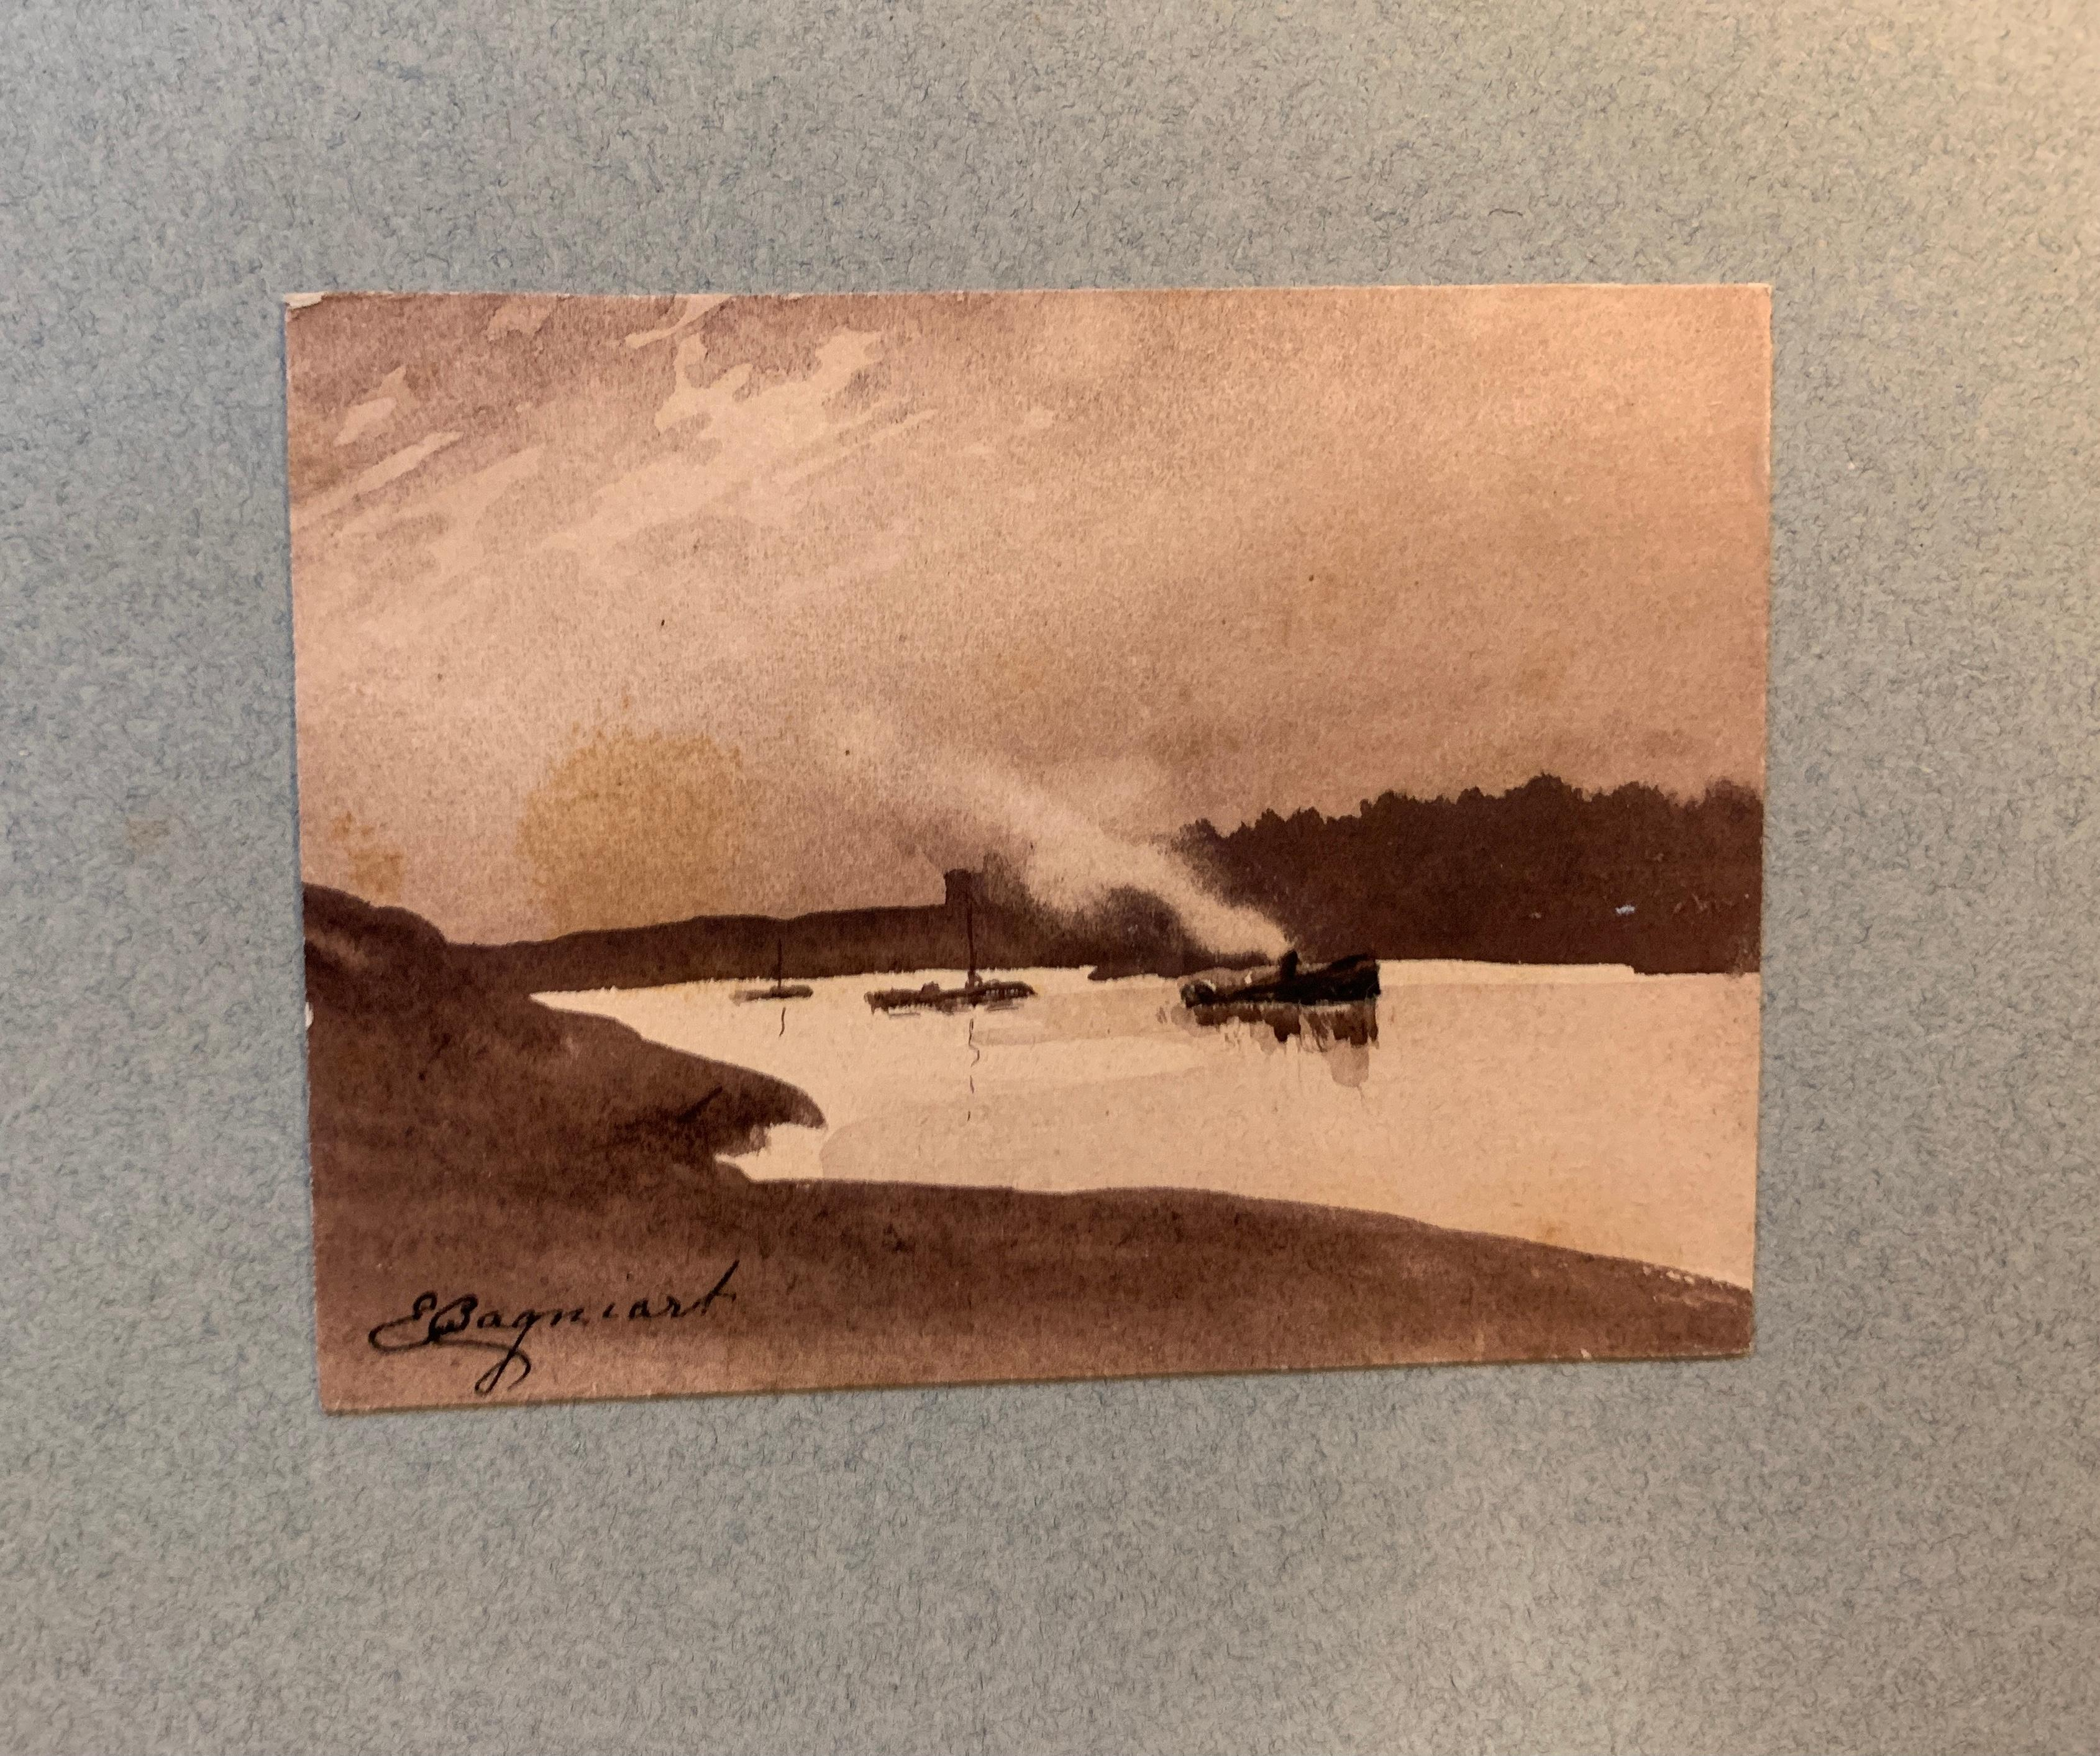 French 19th century Pen and Ink River landscape with boat from a sketch folder